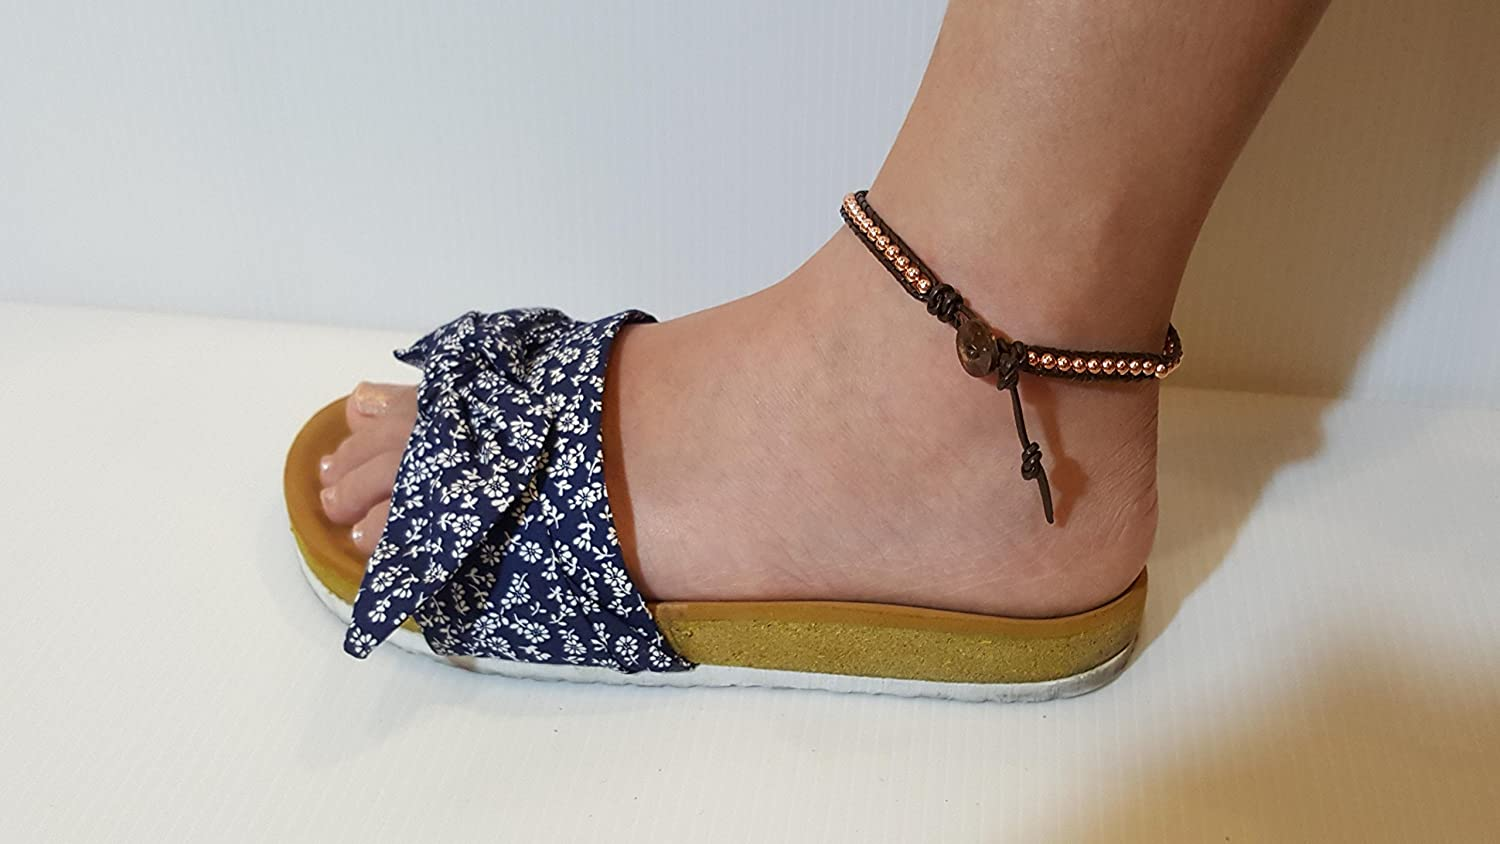 Infinity Trendy Anklet Rose Gold Bead Ankle Bracelet 10 Inches Woven with Leather Cord Beautiful Handmade Hippie Bohemian Style